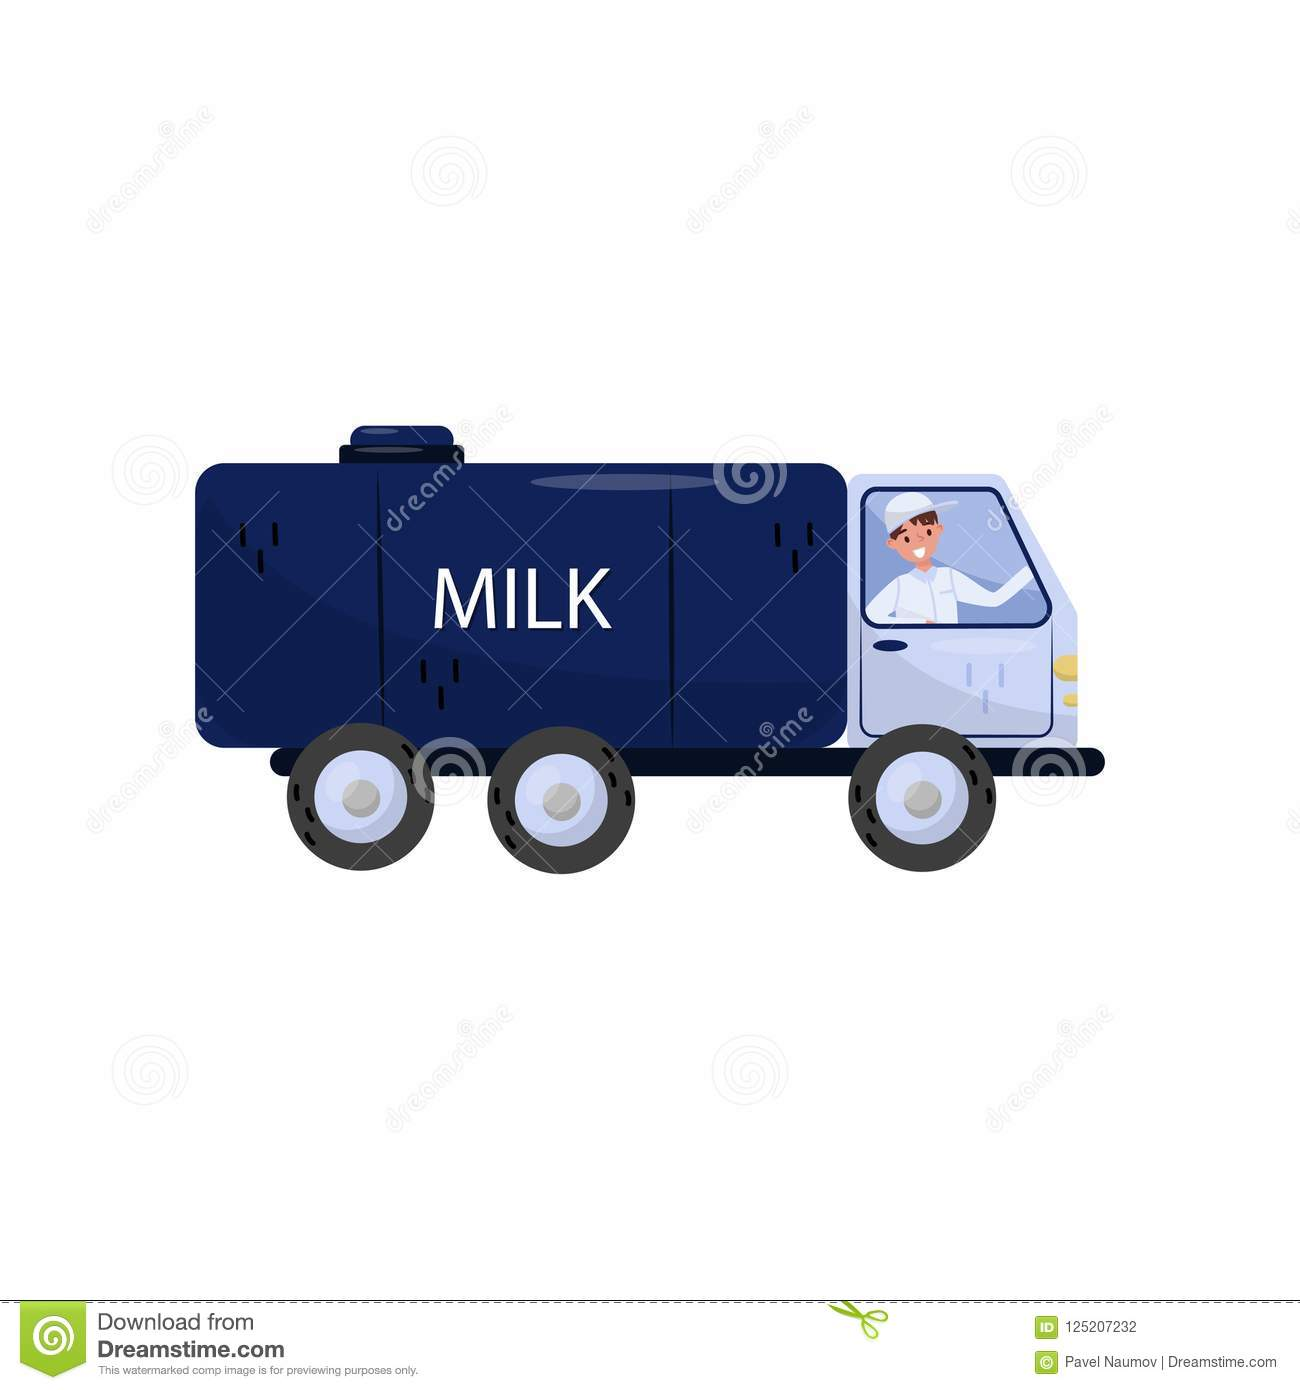 Cheerful man driving truck with milk tank. Vehicle with big blue cistern. Isolated flat vector design